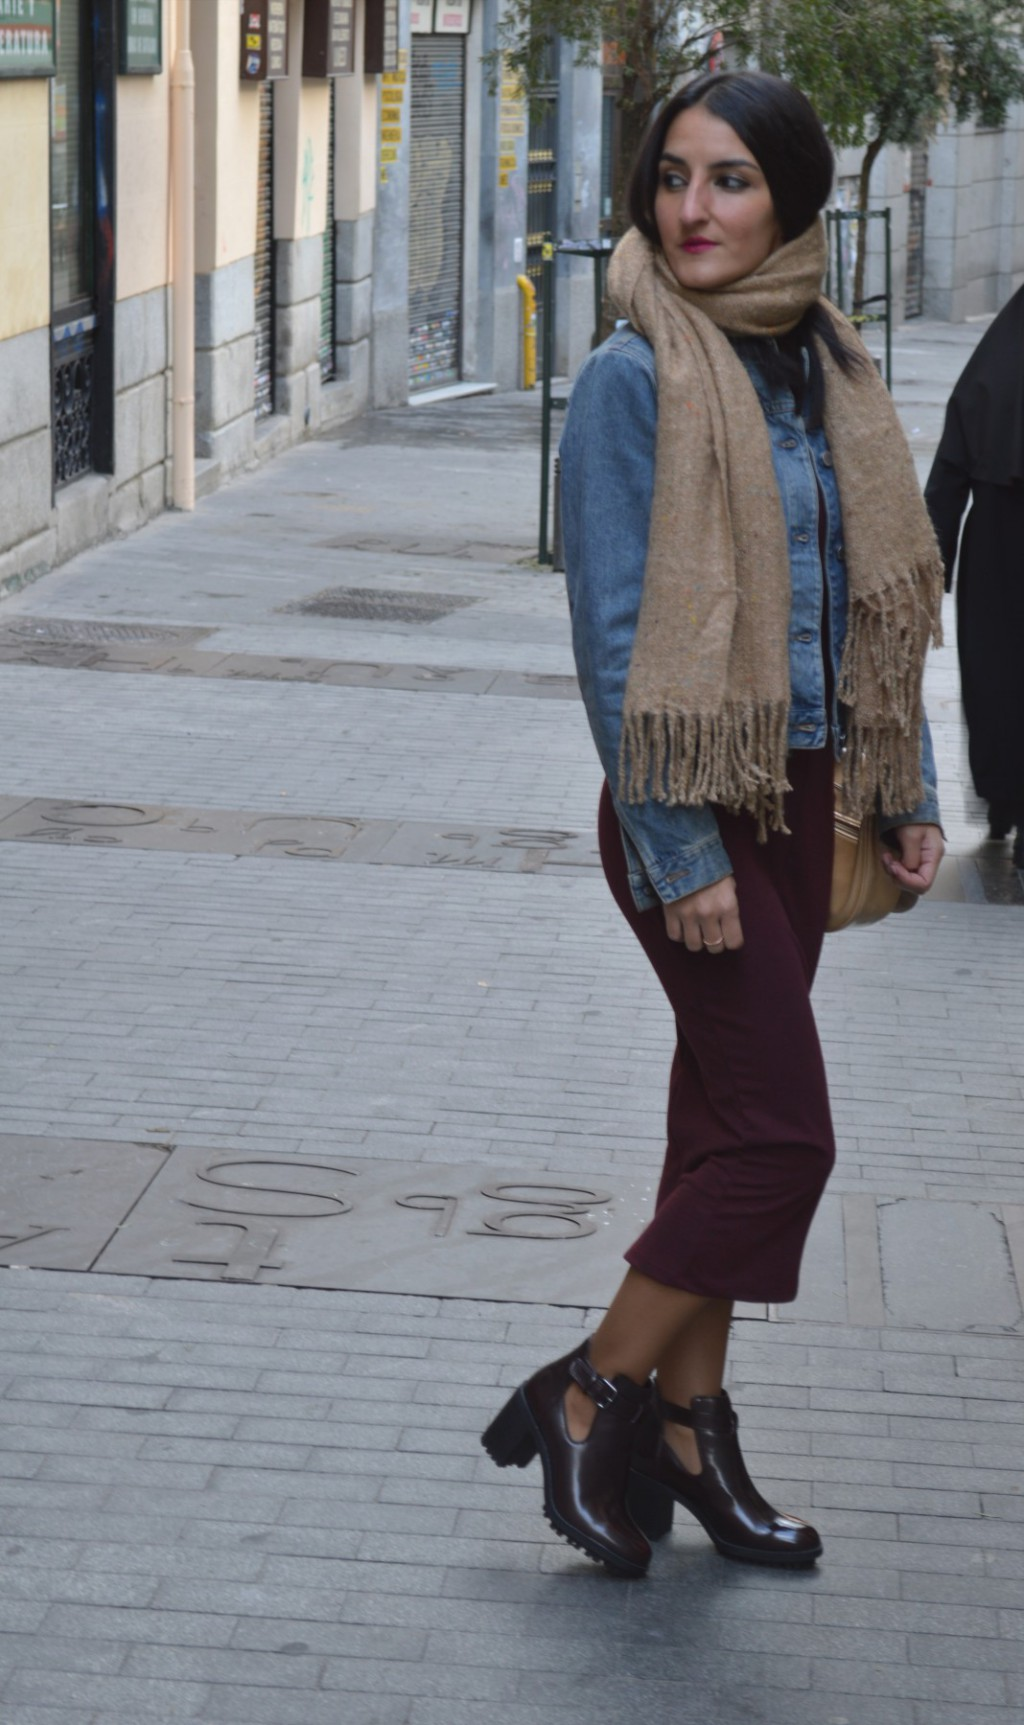 Dress and shoes: Zara (new) Scarf: pull and bear (new) denim jacket: benetton (old) Bag: local store